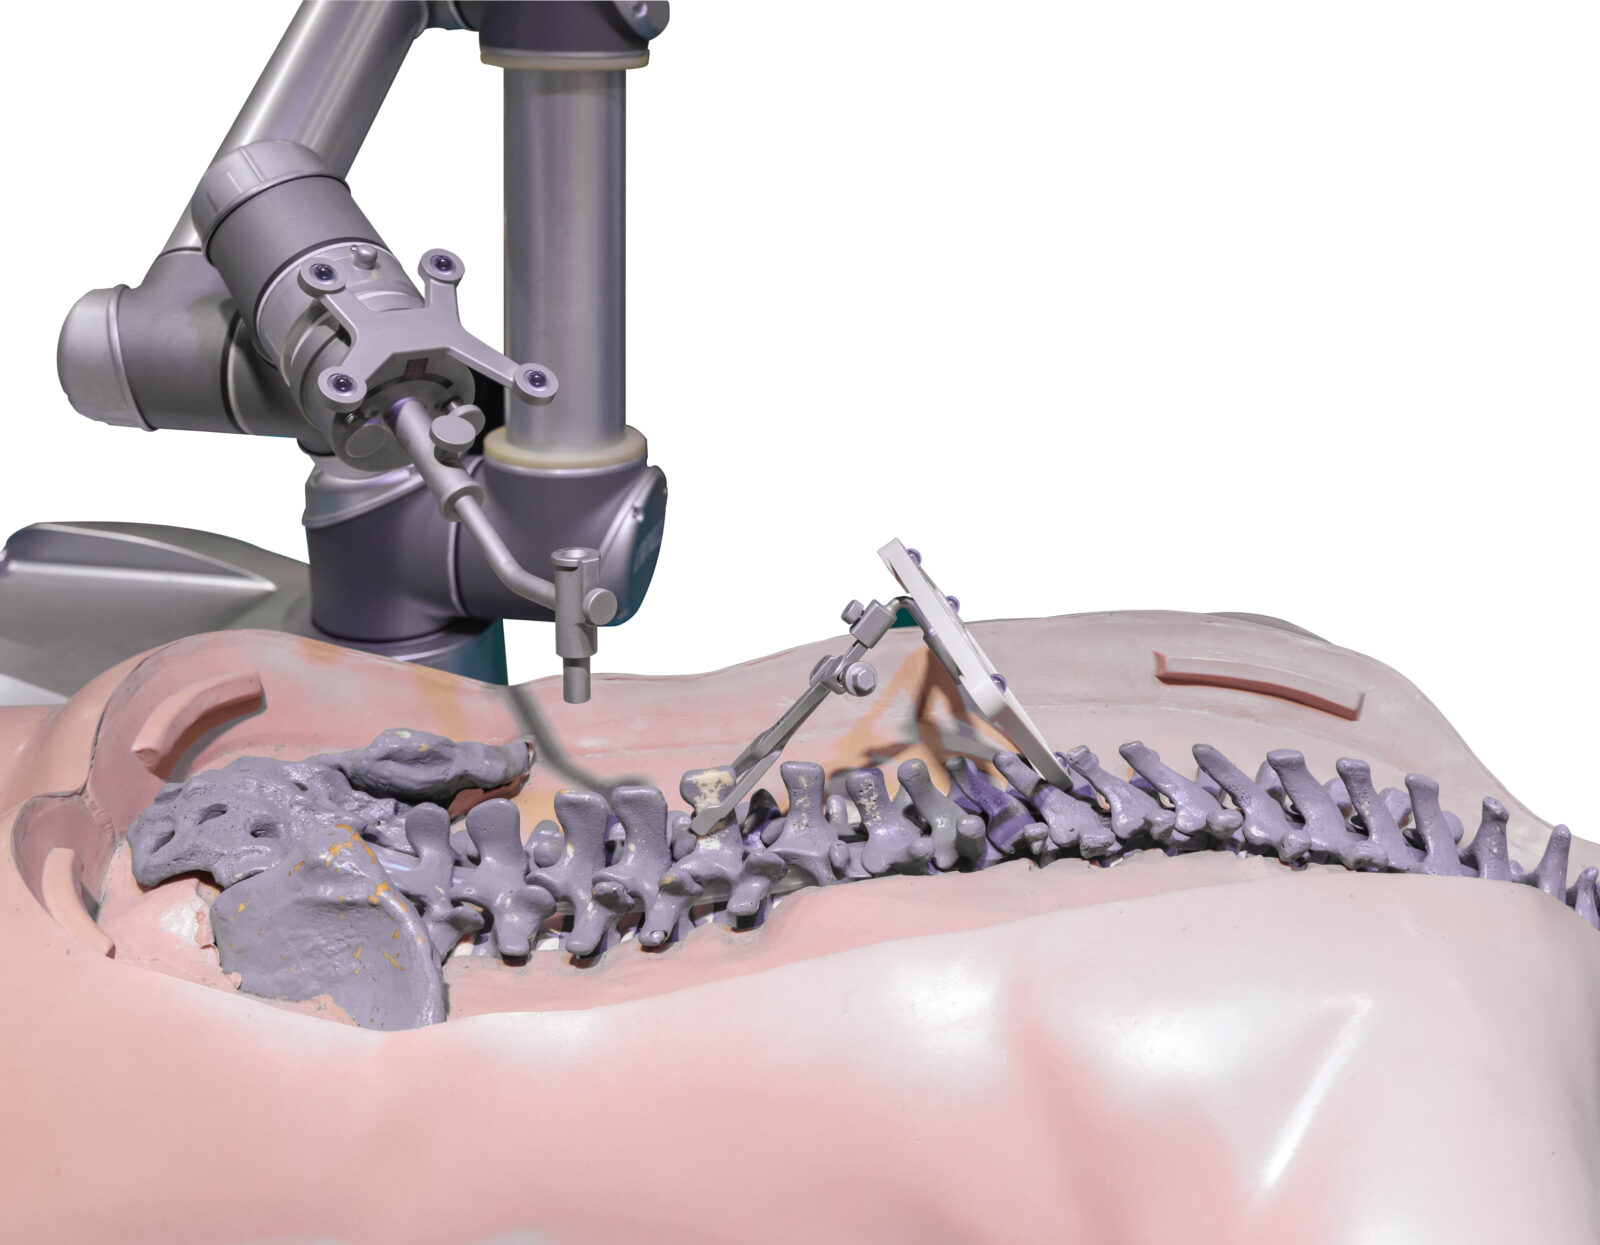 5fe37b f64f819b43e84a7193de6e5b94bf63fd mv2 showing the concept of Robotic Spine Surgery & Augmented Reality